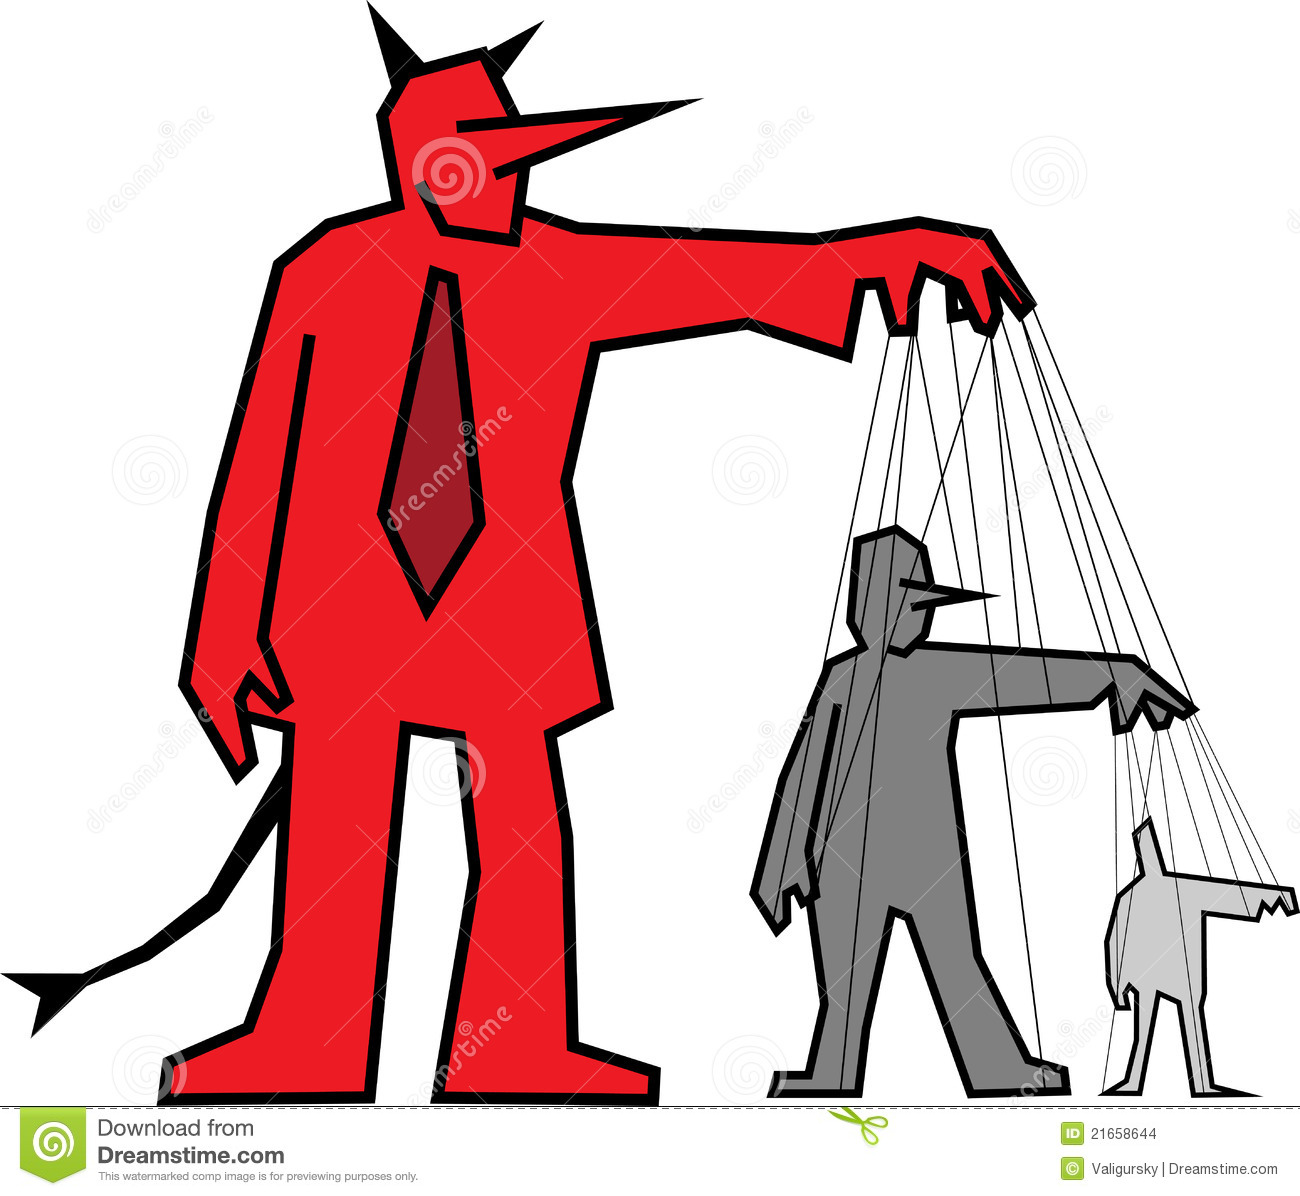 Devil Controlling Other People Stock Vector - Illustration of evil ...